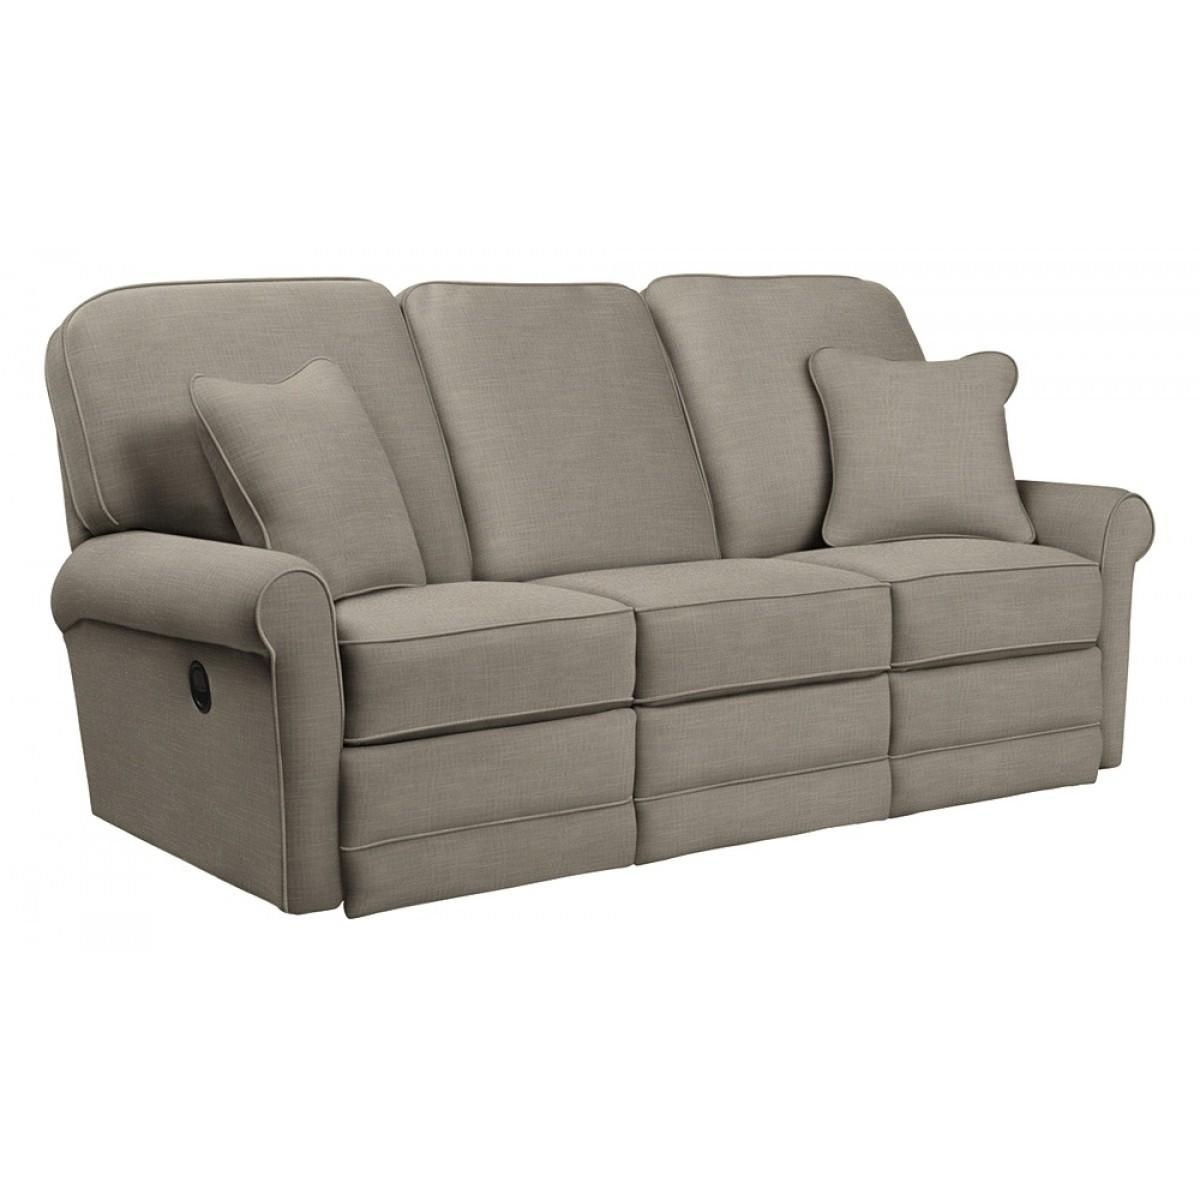 Z-Boy Addison La-Z-Time® Full Reclining Sofa for Lazy Boy Sofas